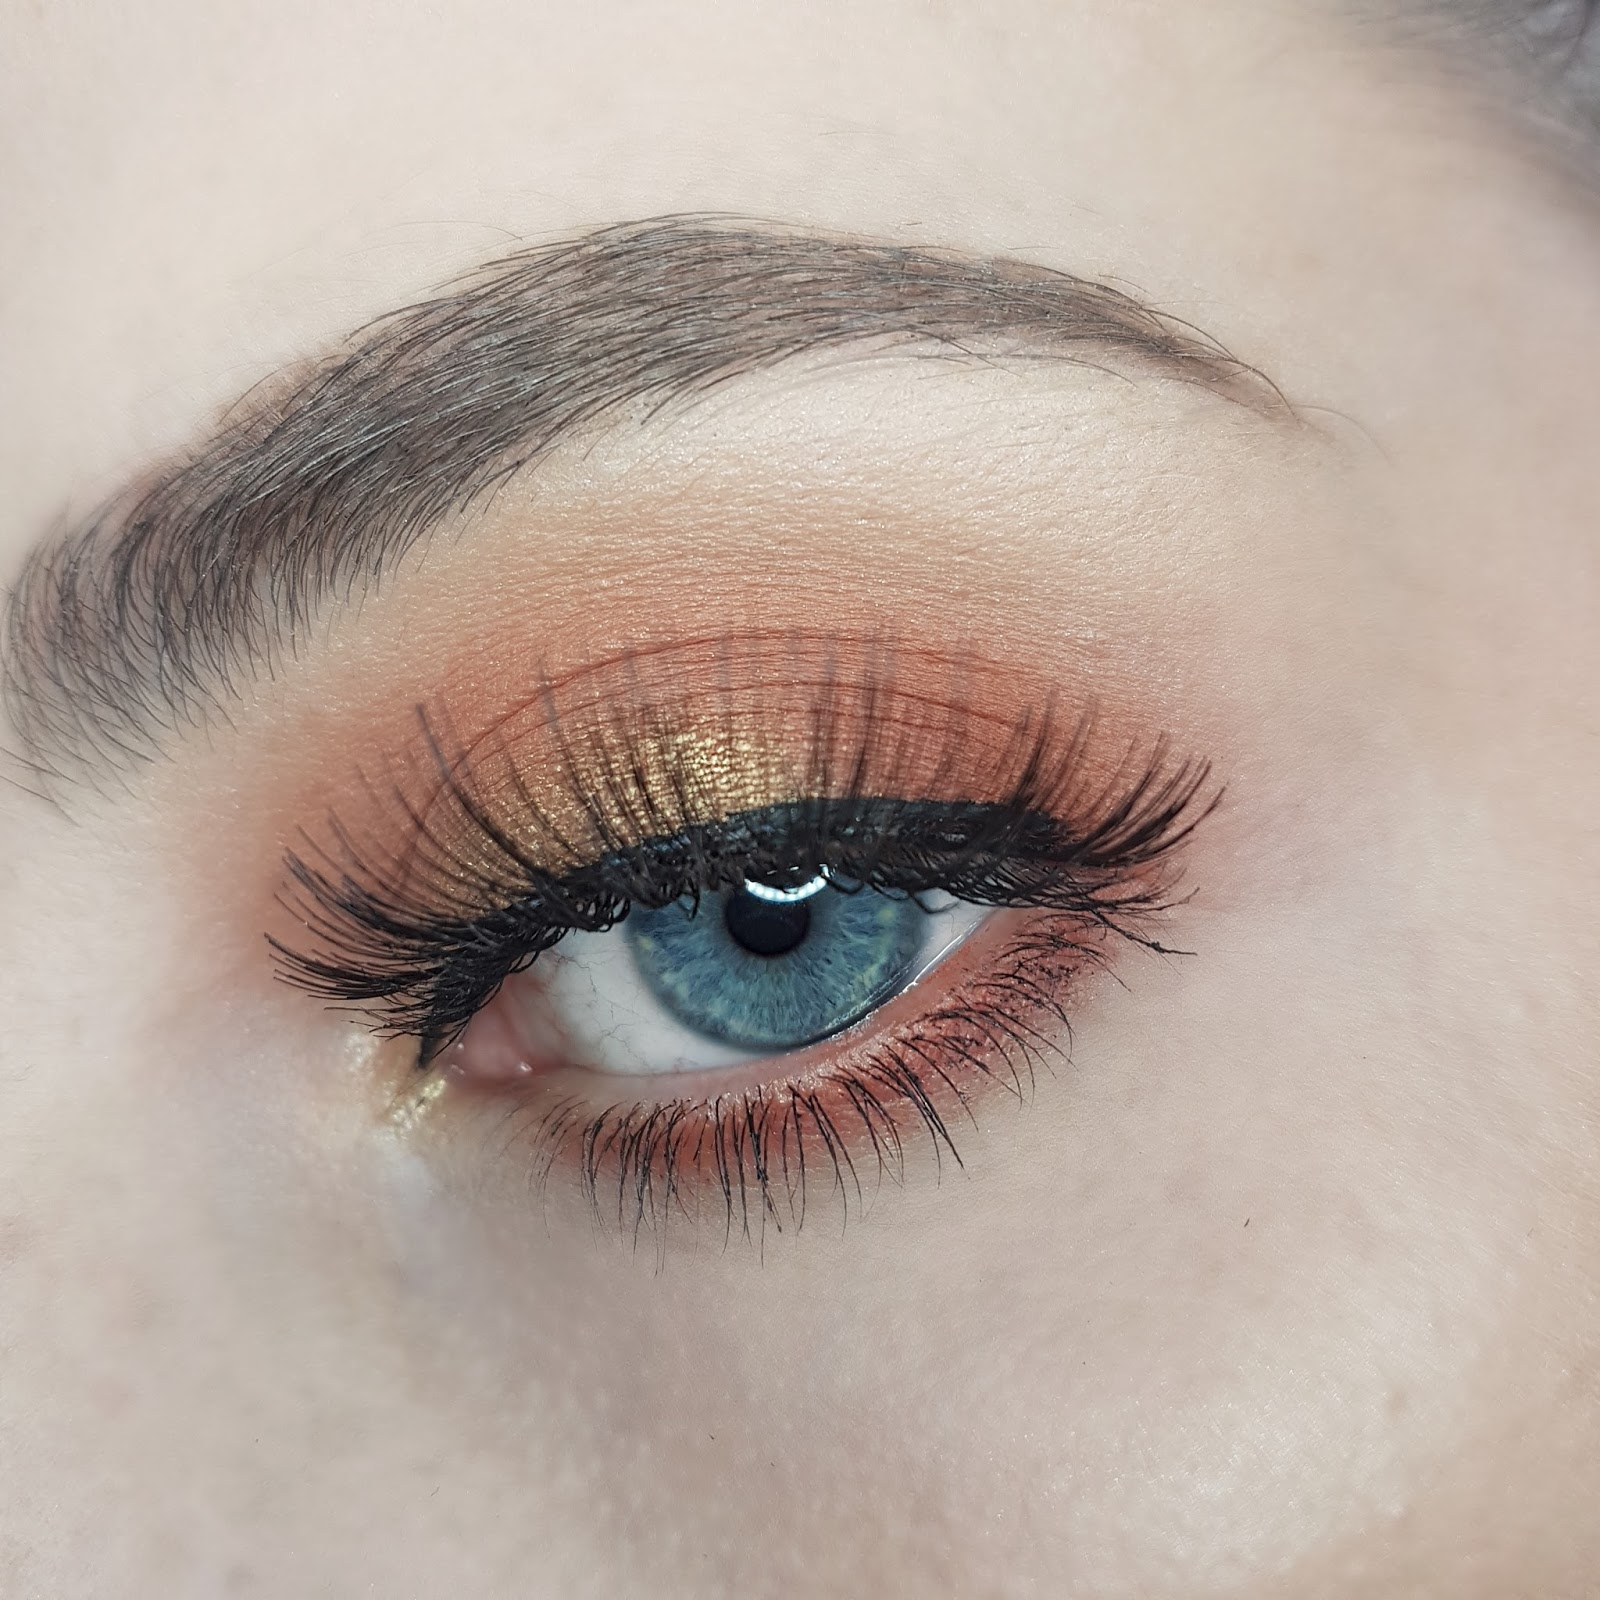 Eye Make Up Using Primark Peach Eyeshadow Palette